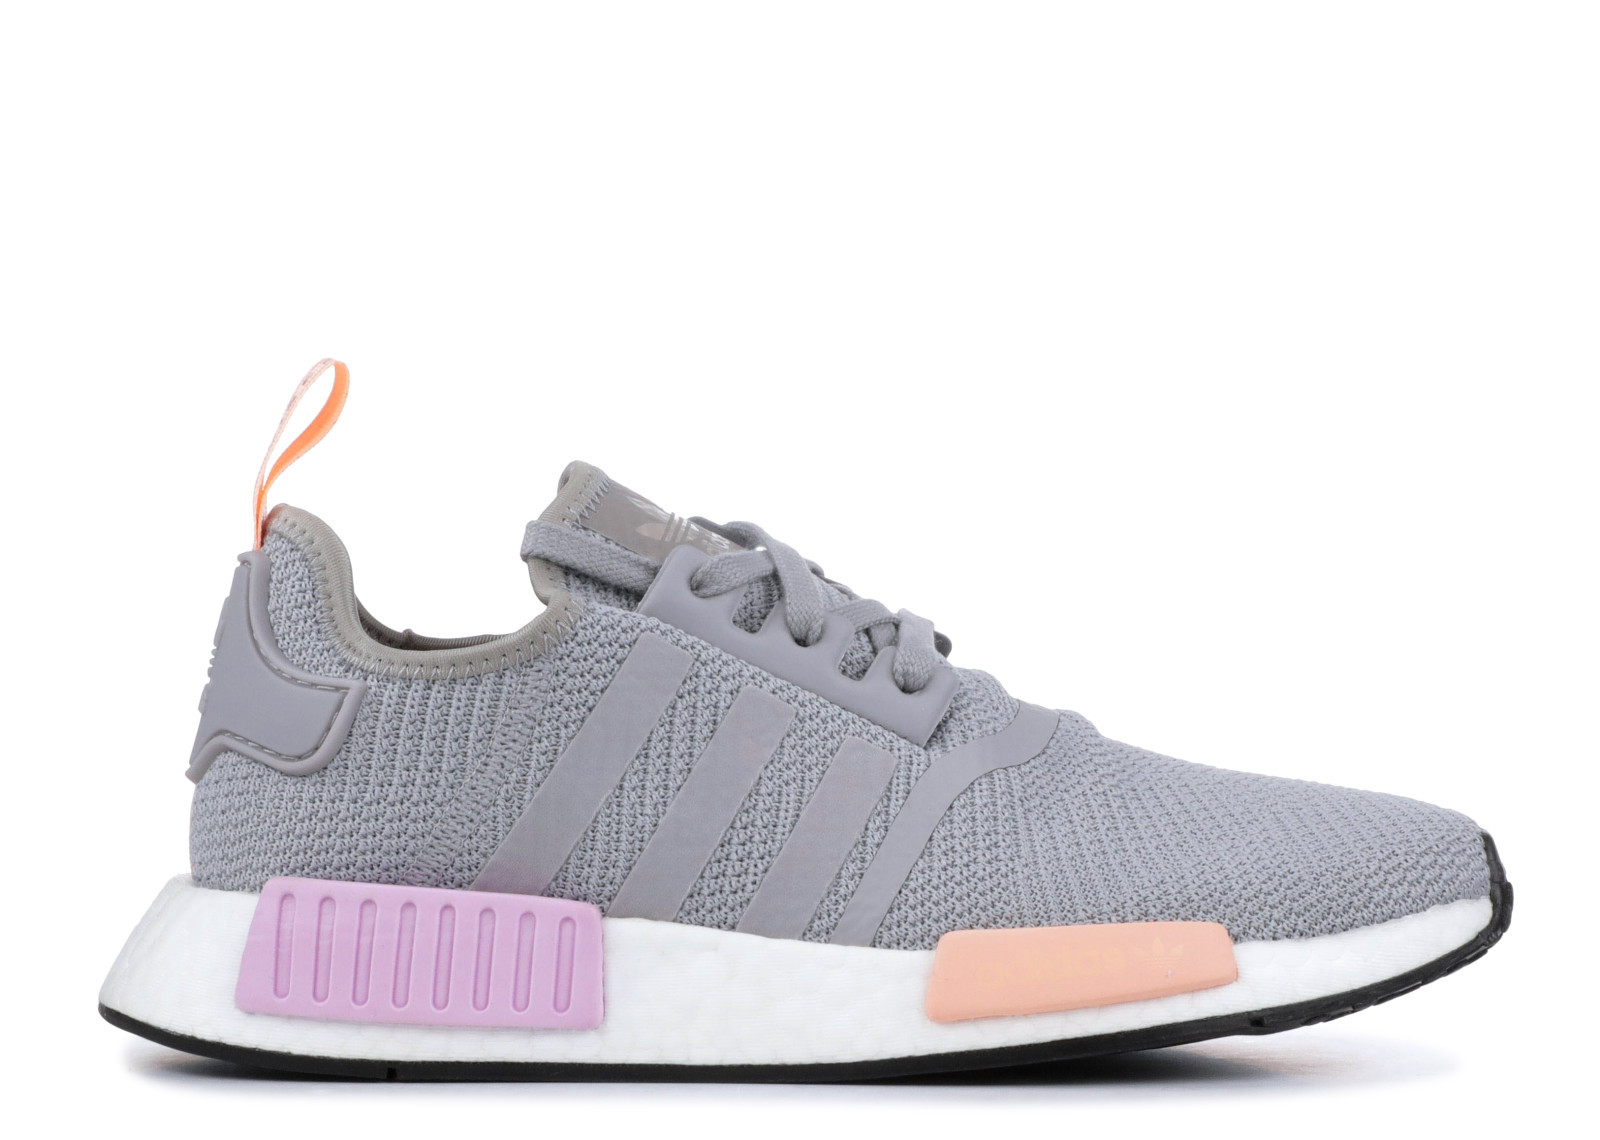 NMD R1 LIGHT GRANITE (W) image 1